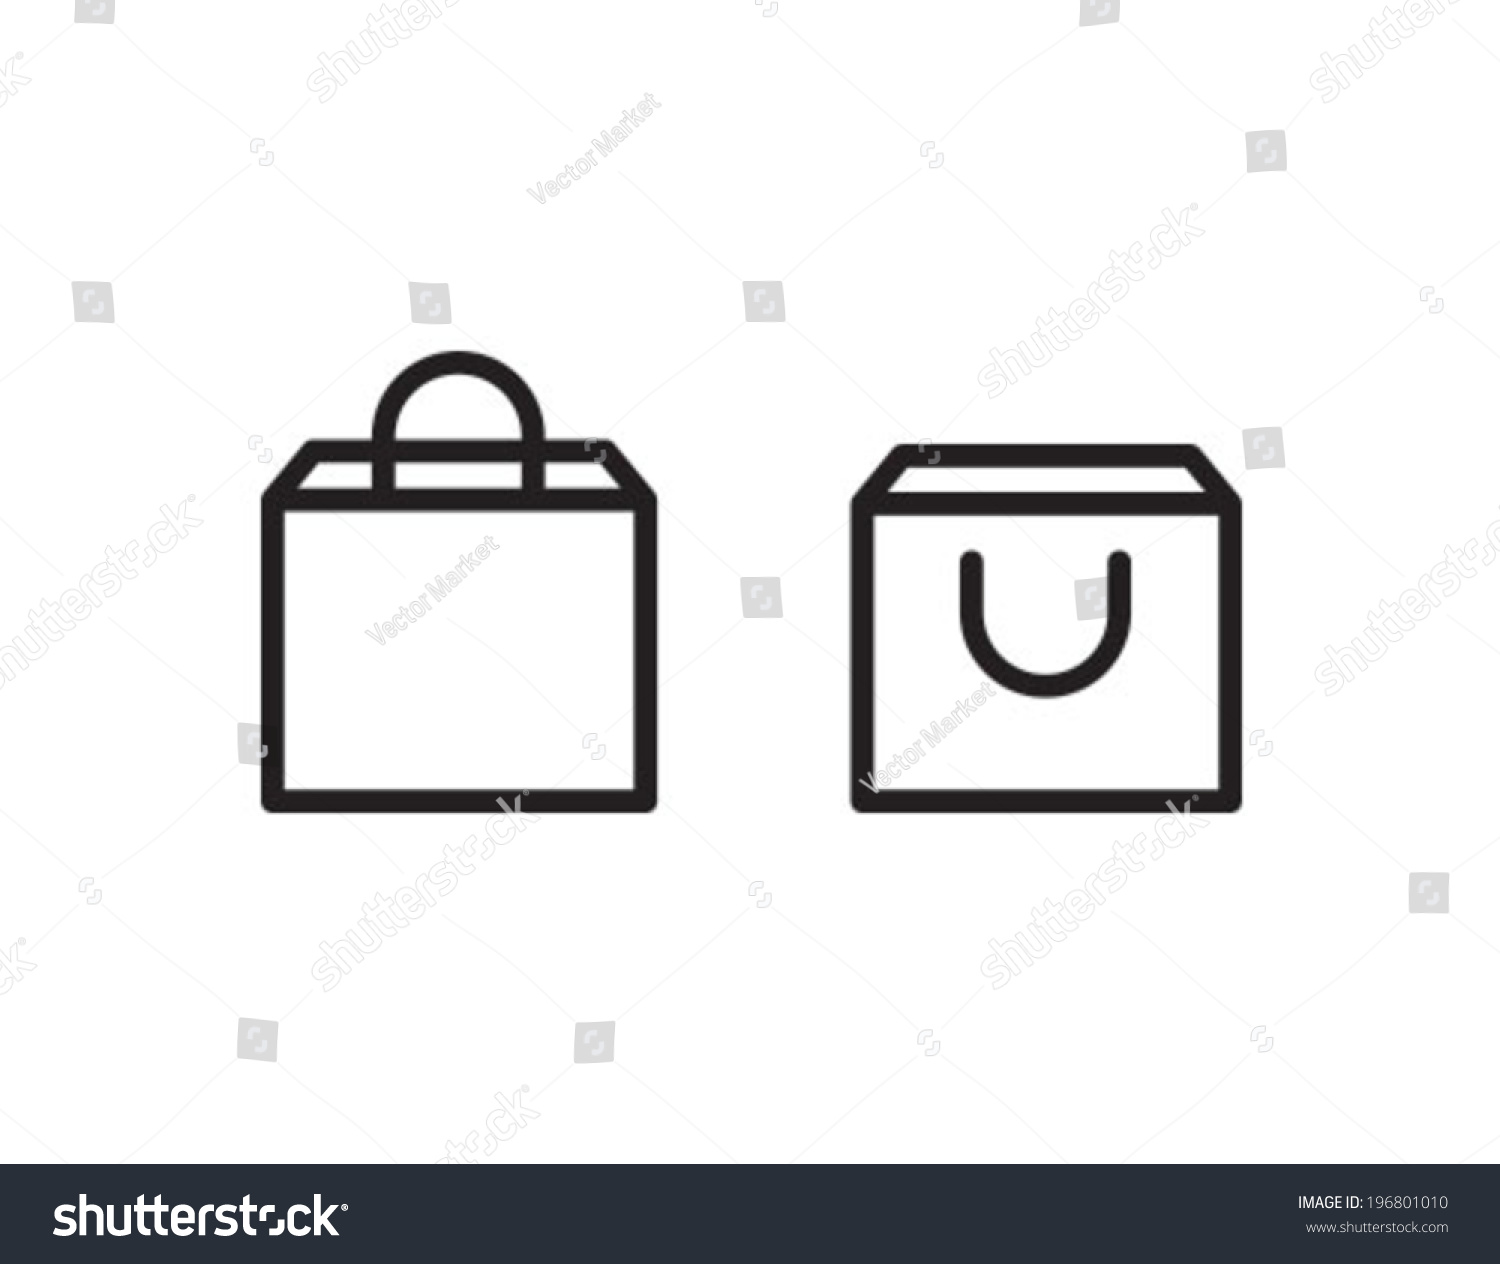 Shopping Bag Outline Icon Symbol Stock Vector 196801010 - Shutterstock